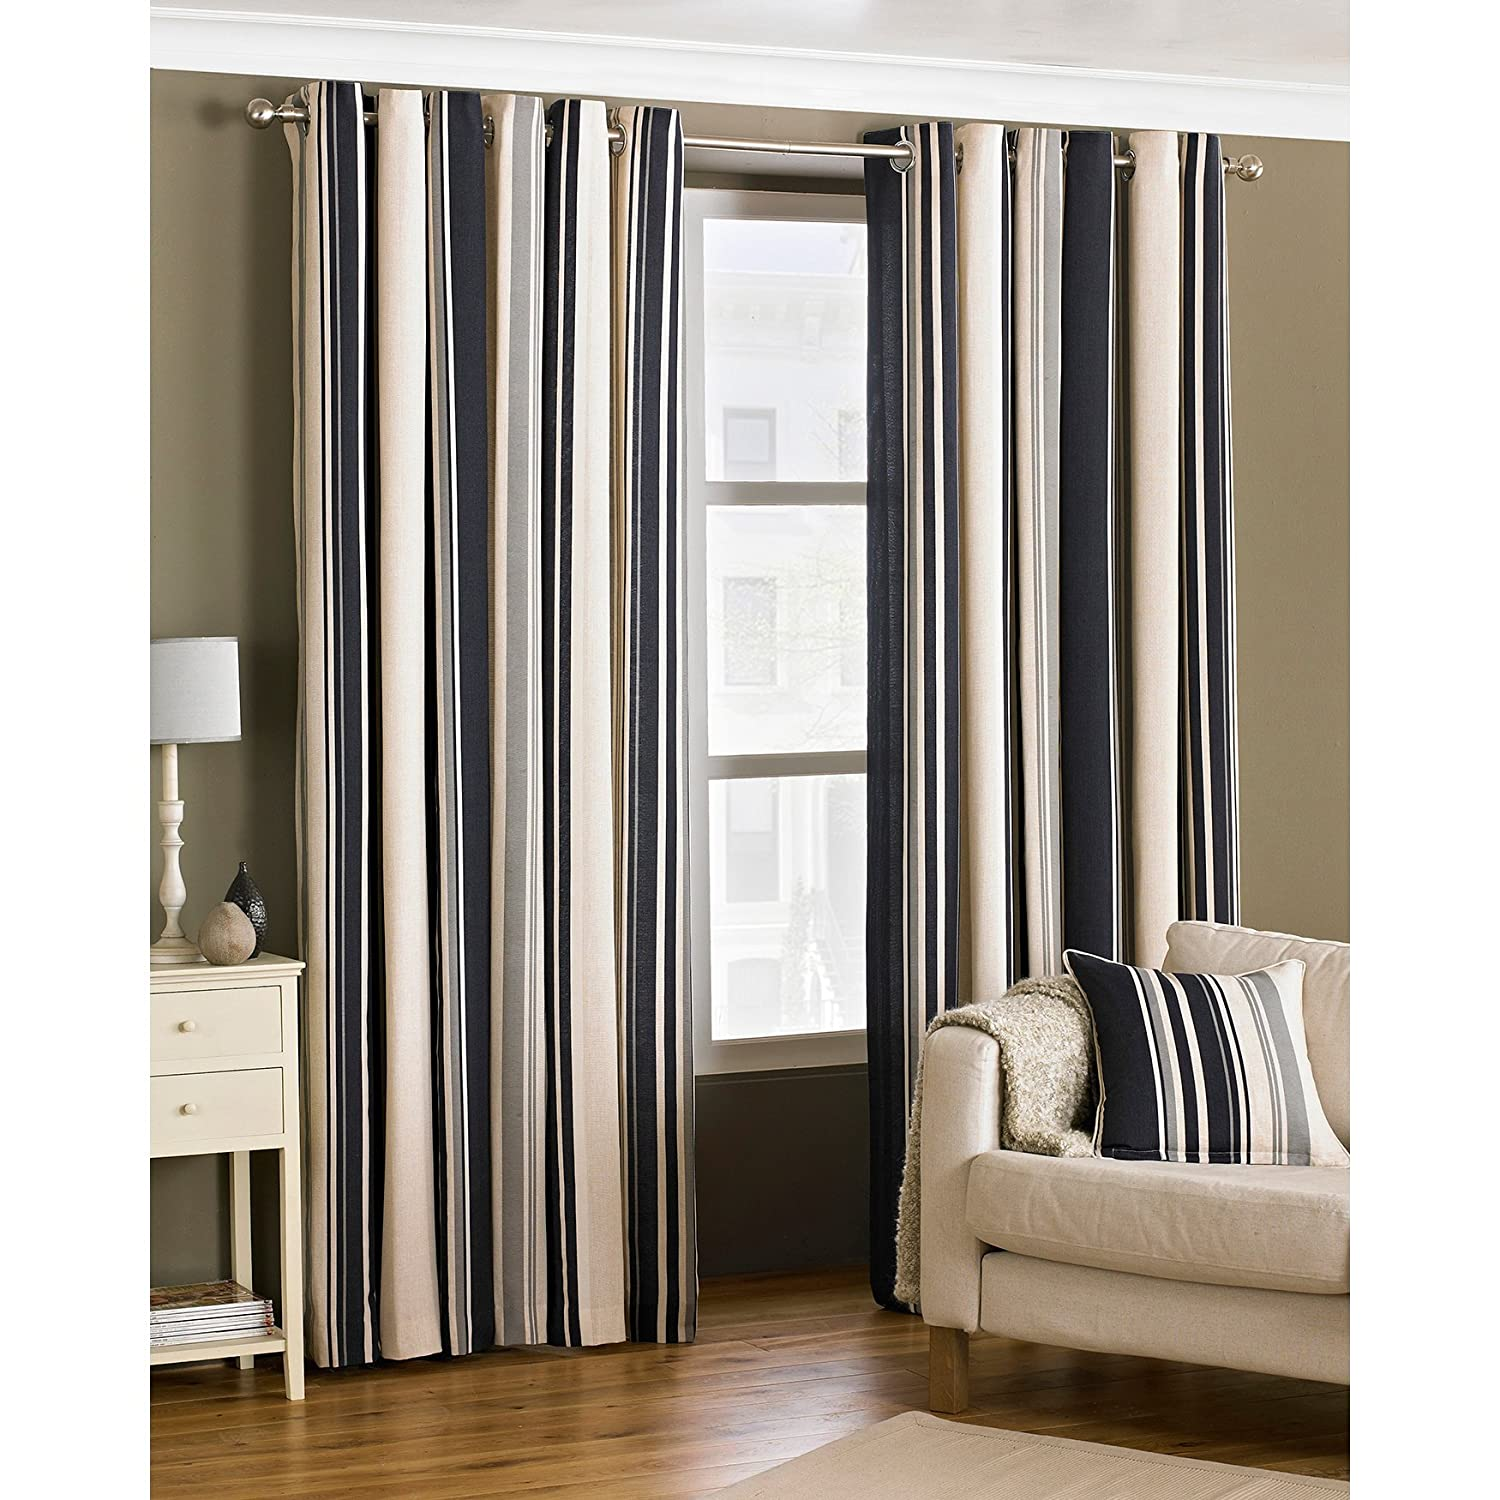 Broadway Stripe Woven Lined Eyelet Curtains Coffee 46 X 54 Inch Amazoncouk Kitchen Home